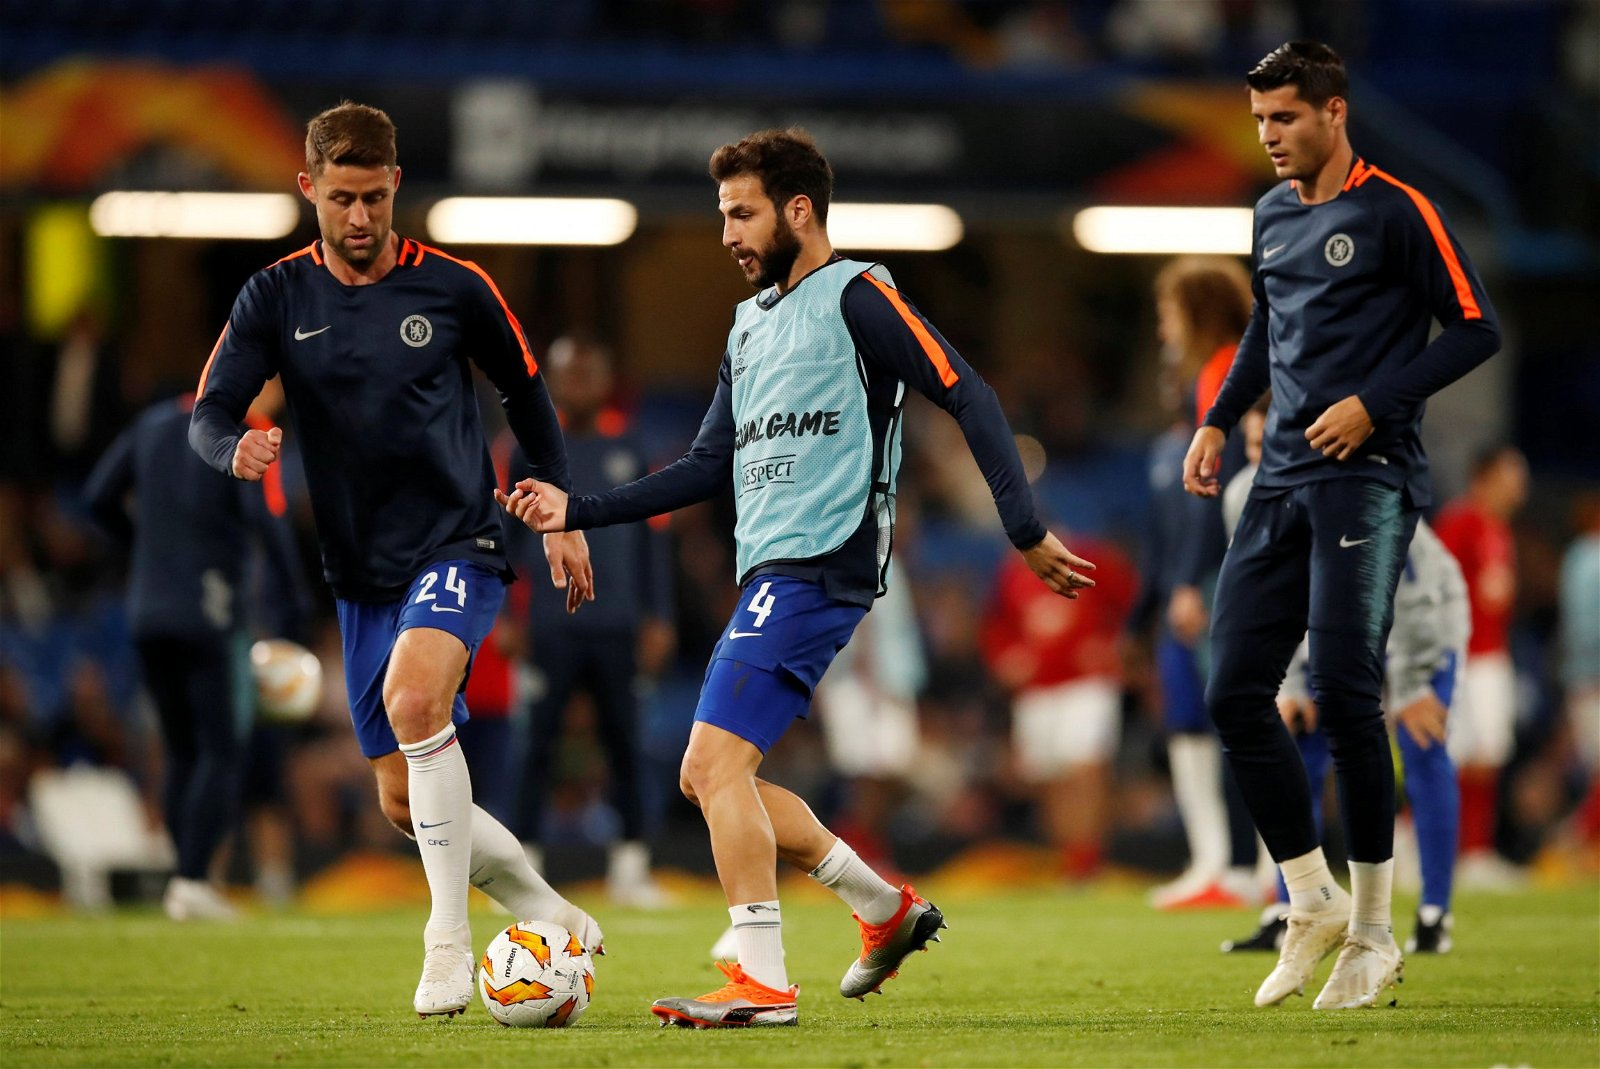 Cesc Fabregas warming up before a Chelsea game